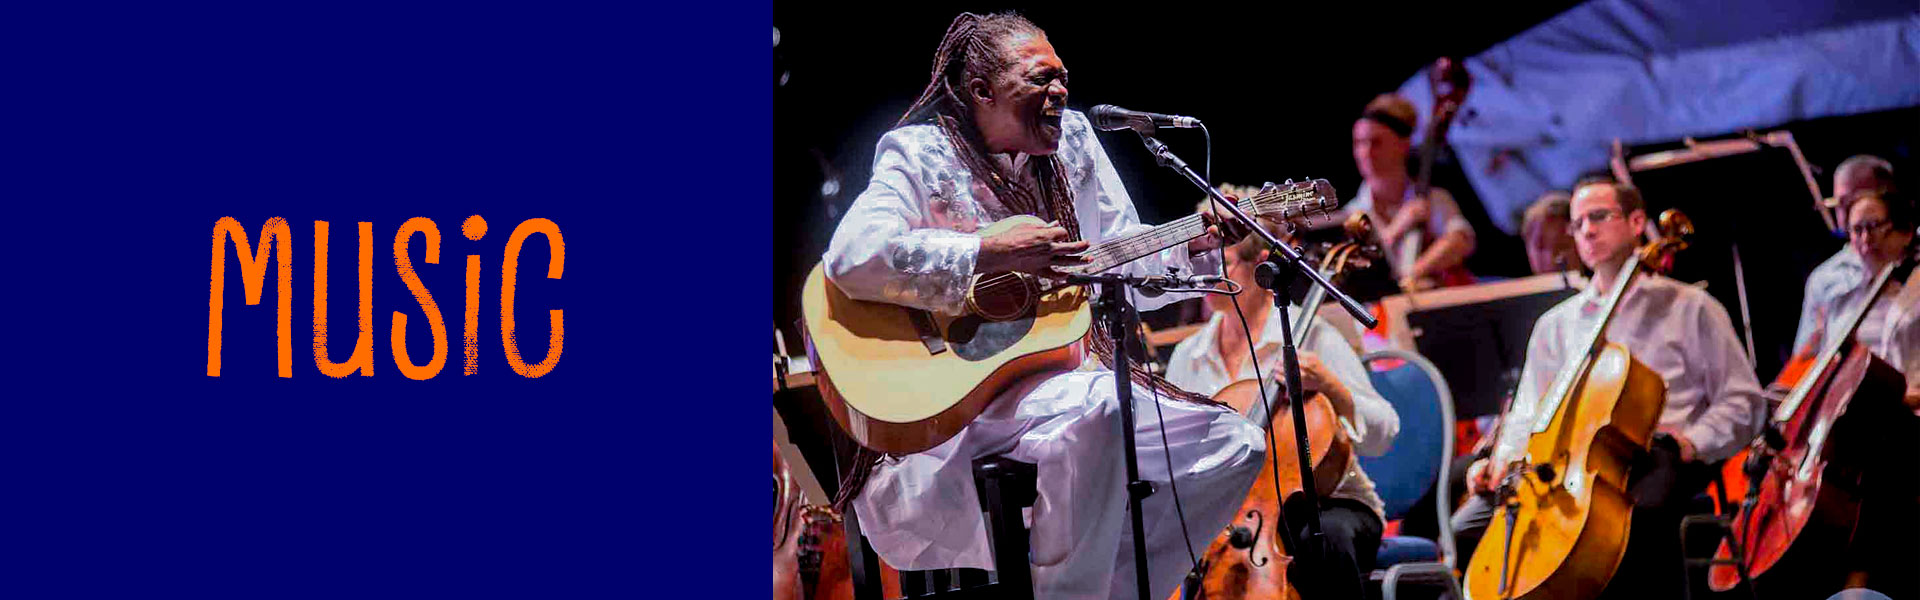 Music Events - What's On In Barbados